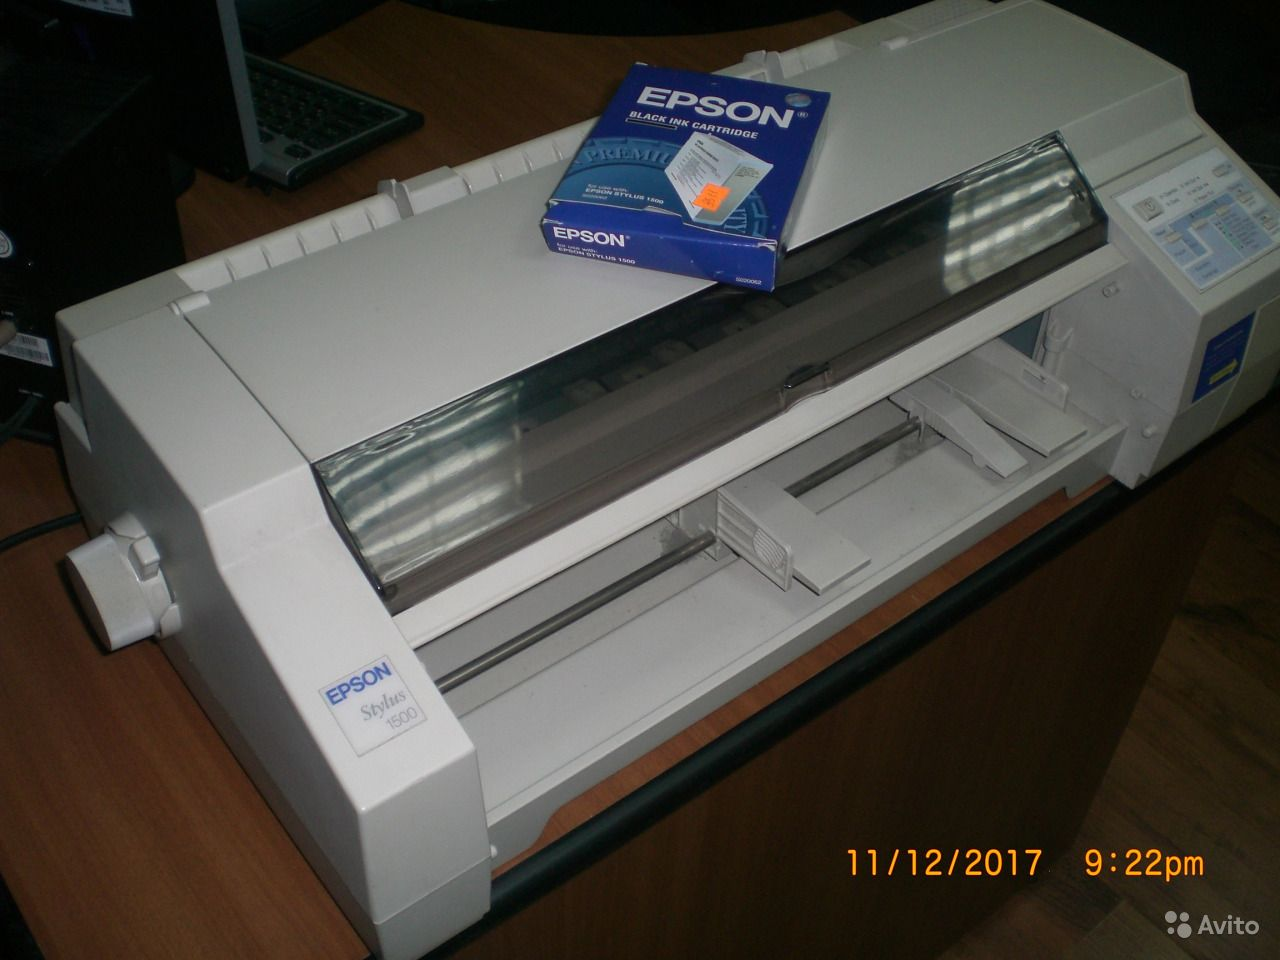 EPSON STYLUS 1500 DRIVERS DOWNLOAD